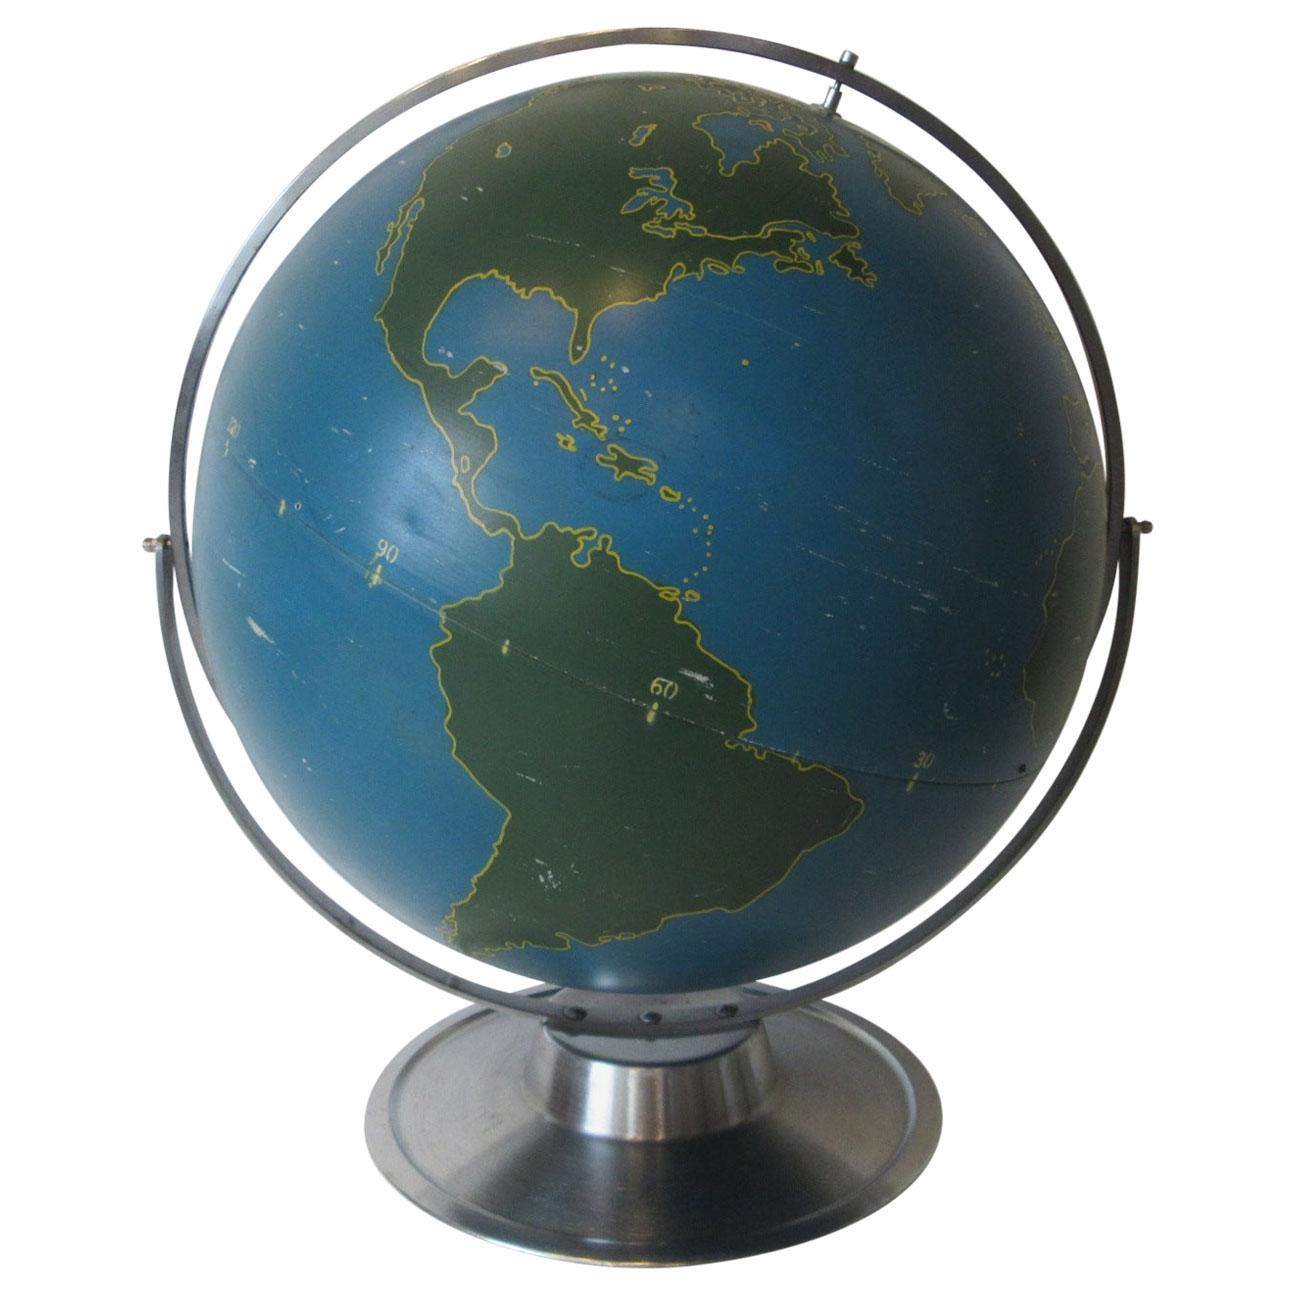 Machine Age Industrial Globe by A.J. Nystrom